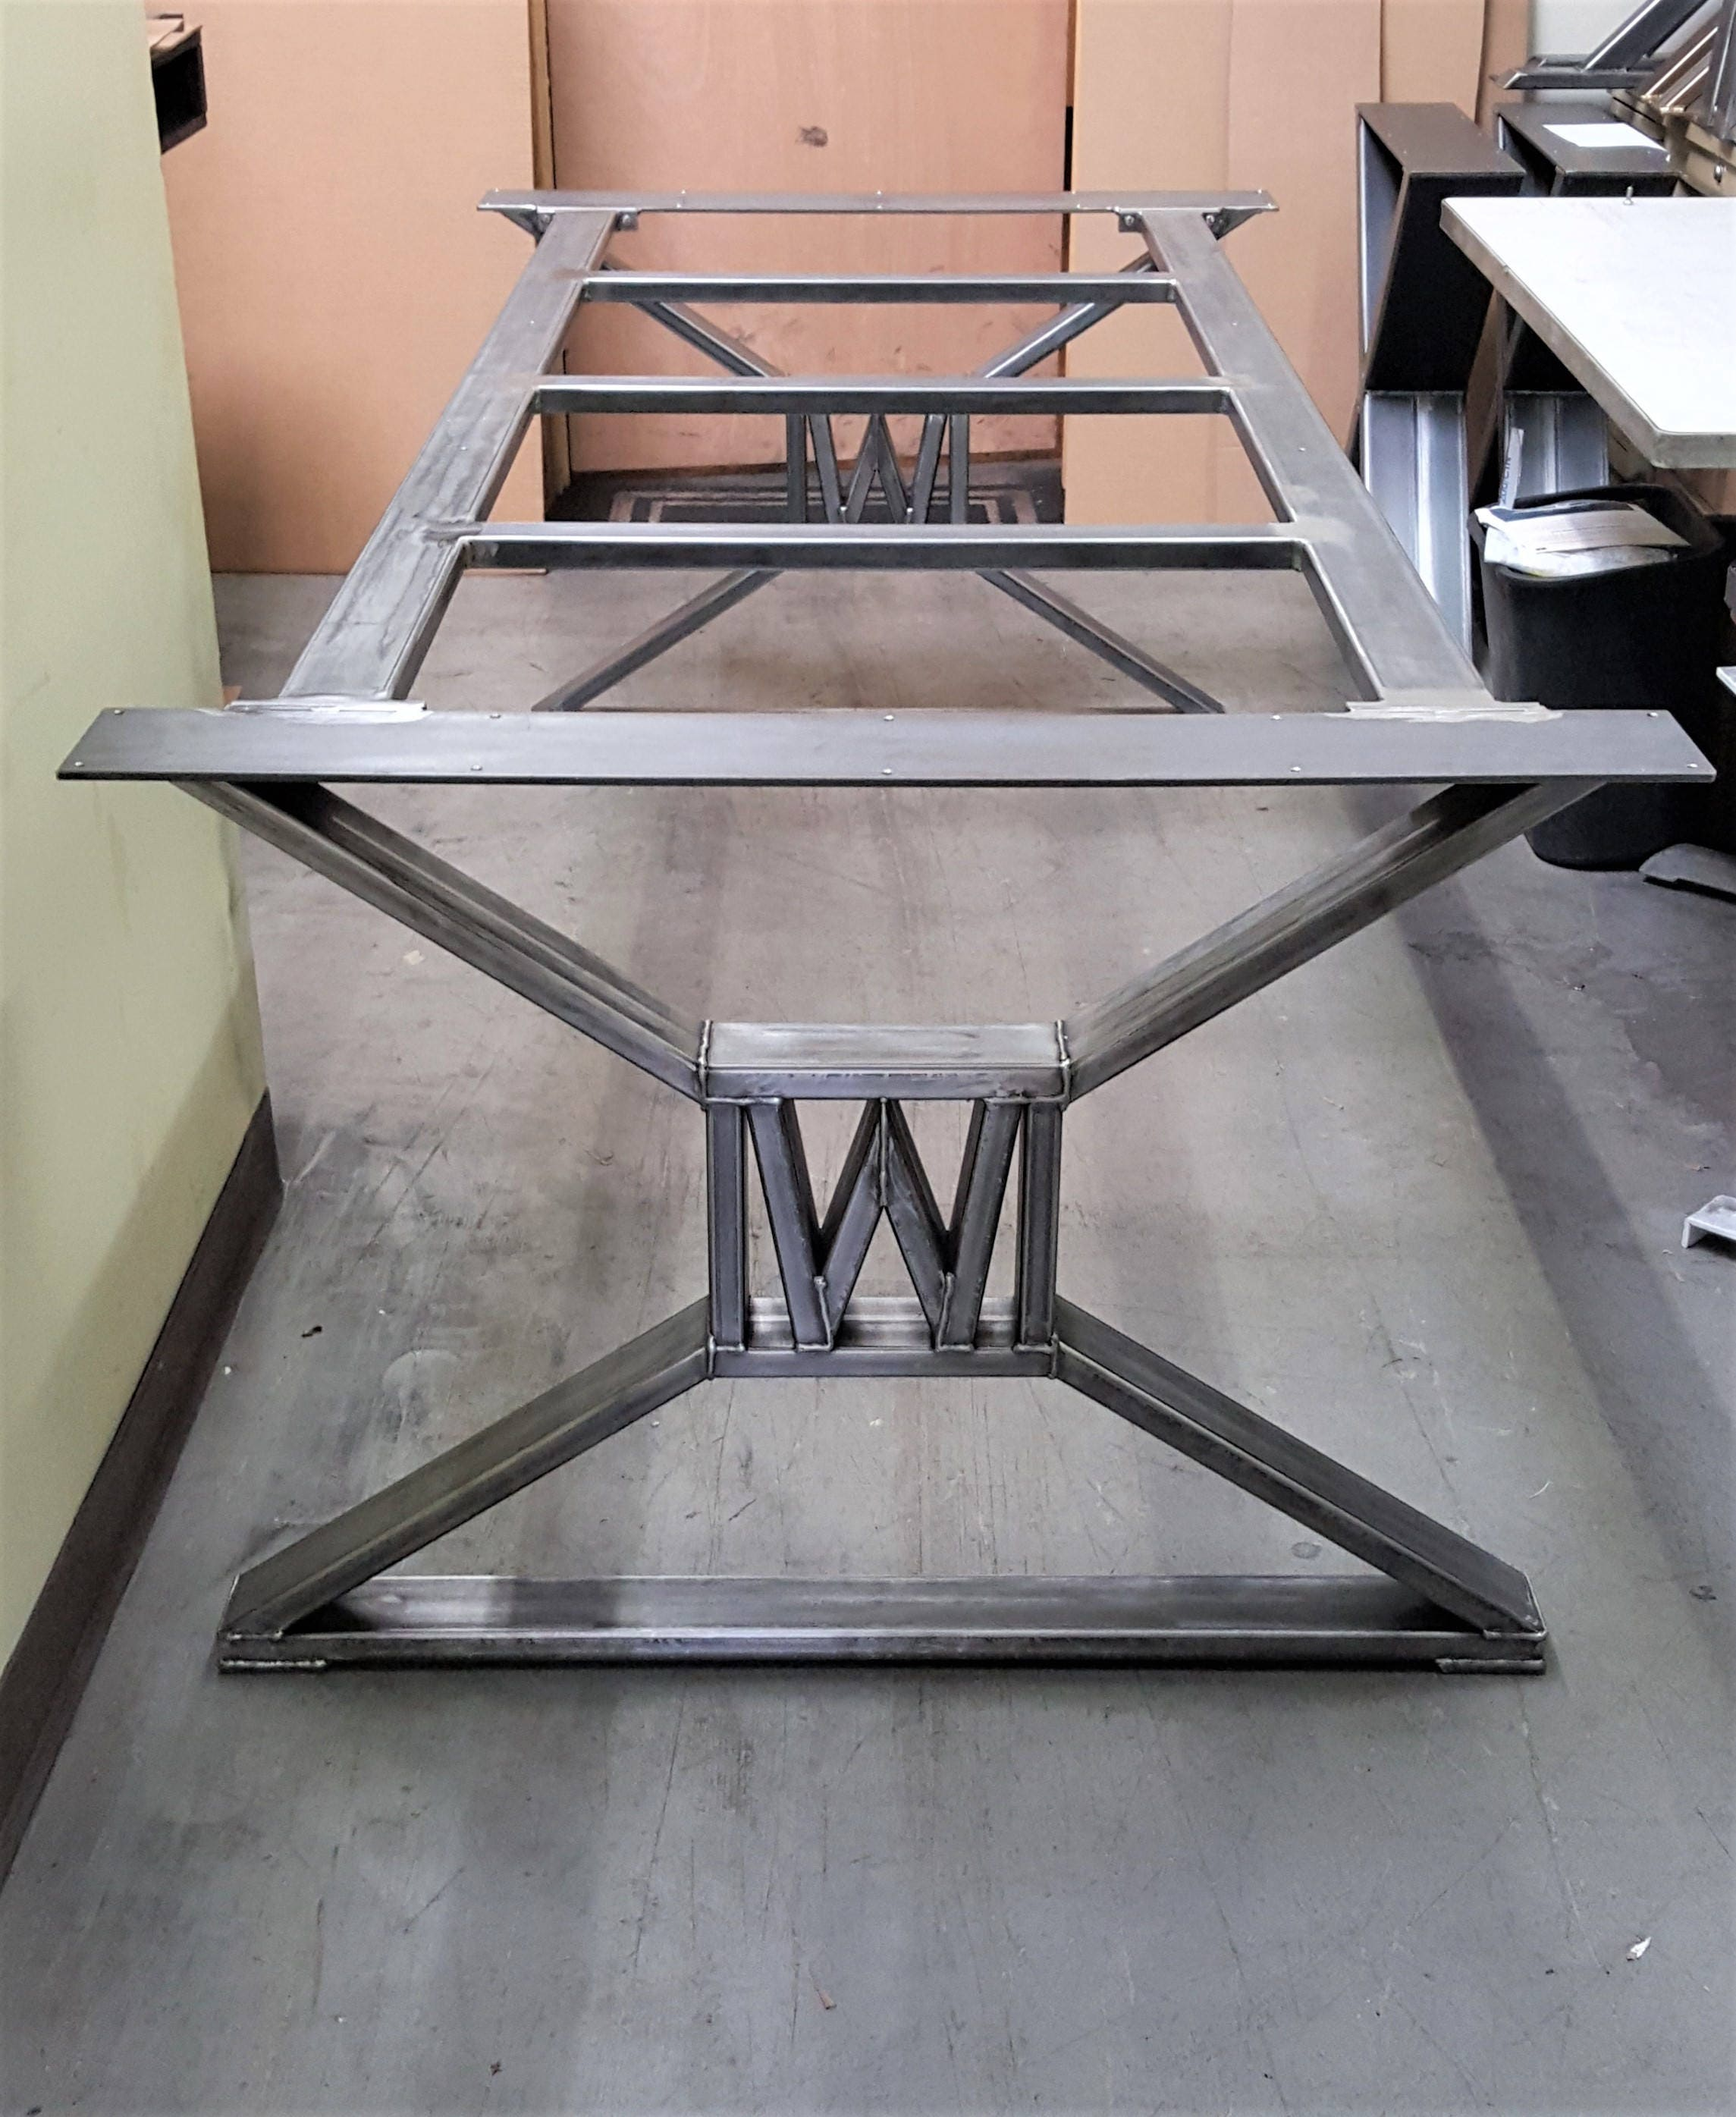 Modern, Industrial Dining Table Legs  with builded W , Model TTS09BW, with Frame Brace